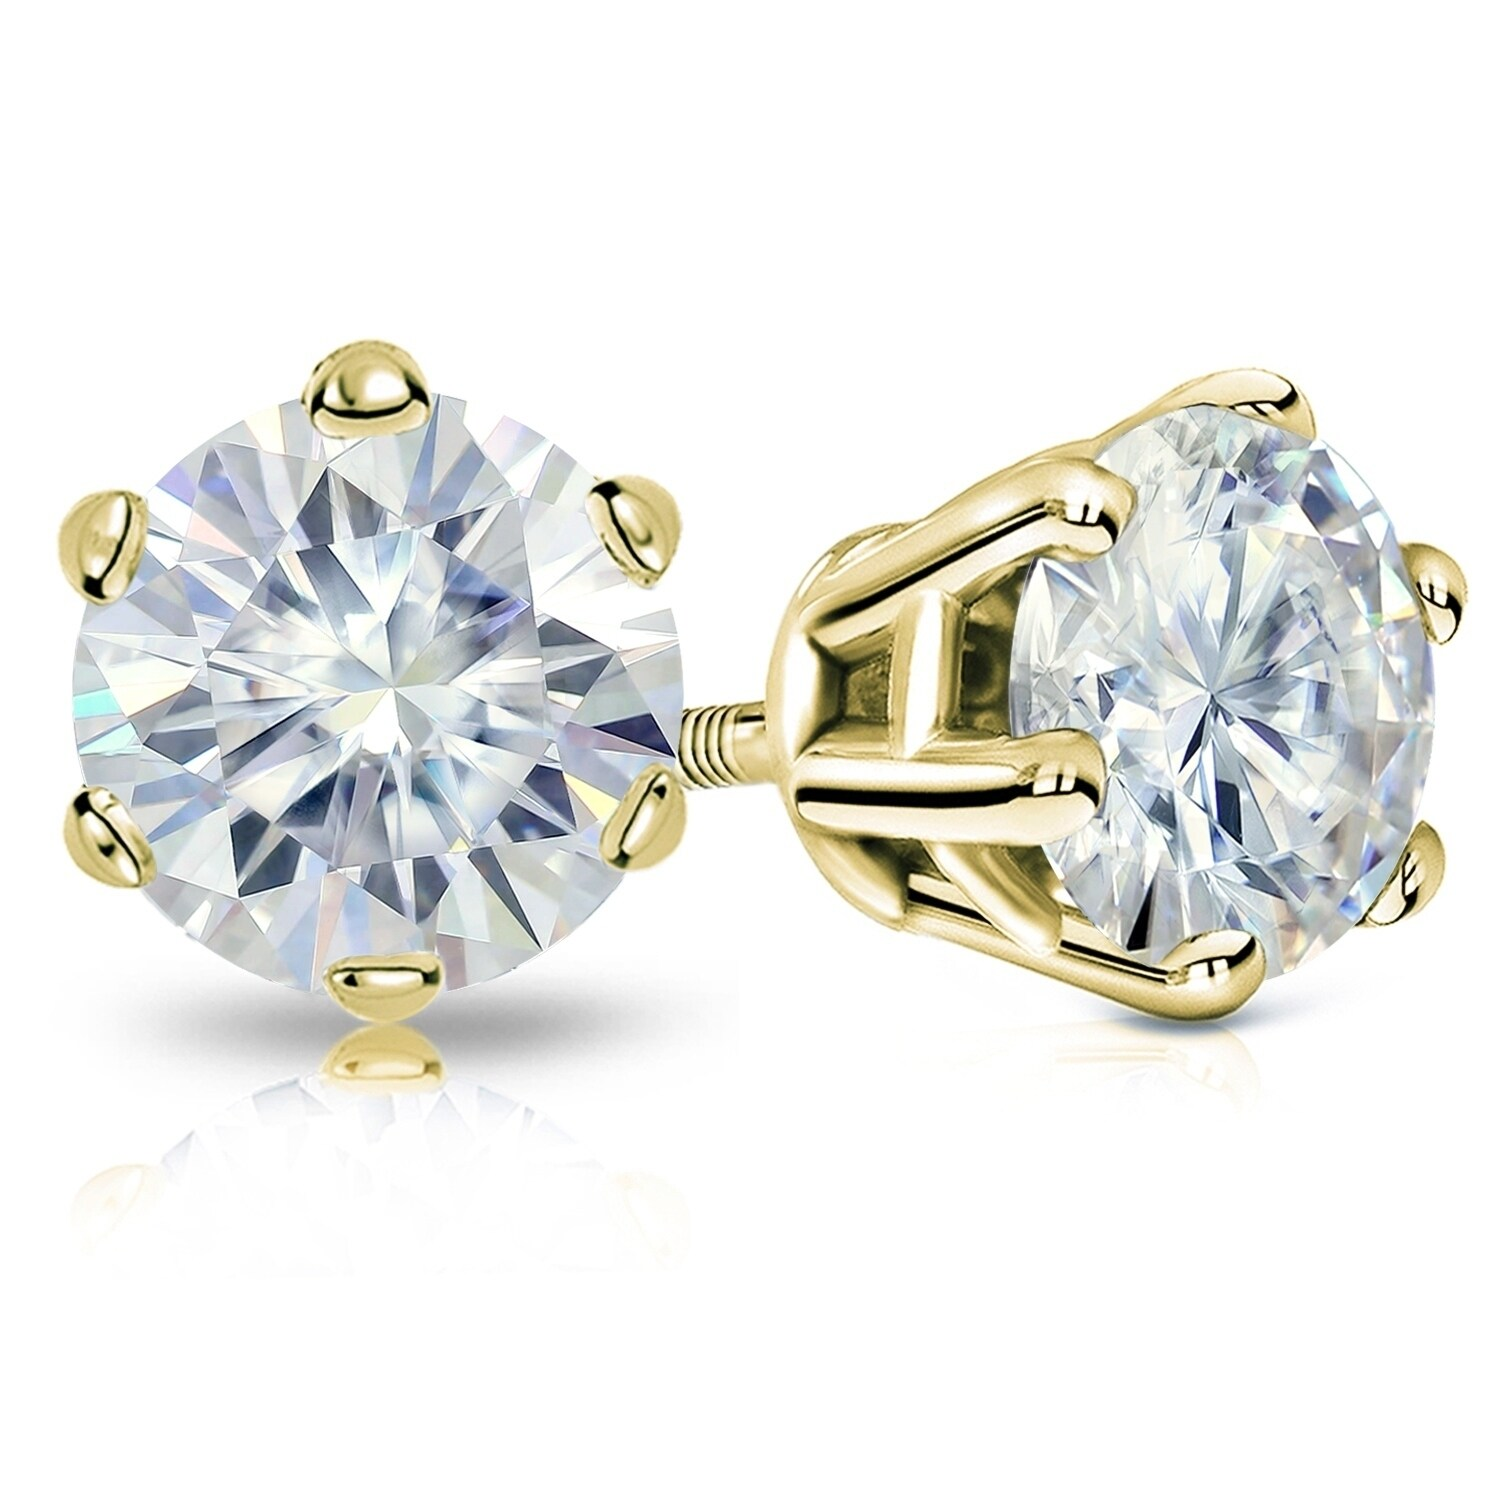 f26ae09c9 Shop Auriya Round Moissanite Stud Earrings 1 carat TW 14k Gold - 1.00ct -  On Sale - Free Shipping Today - Overstock - 23579077